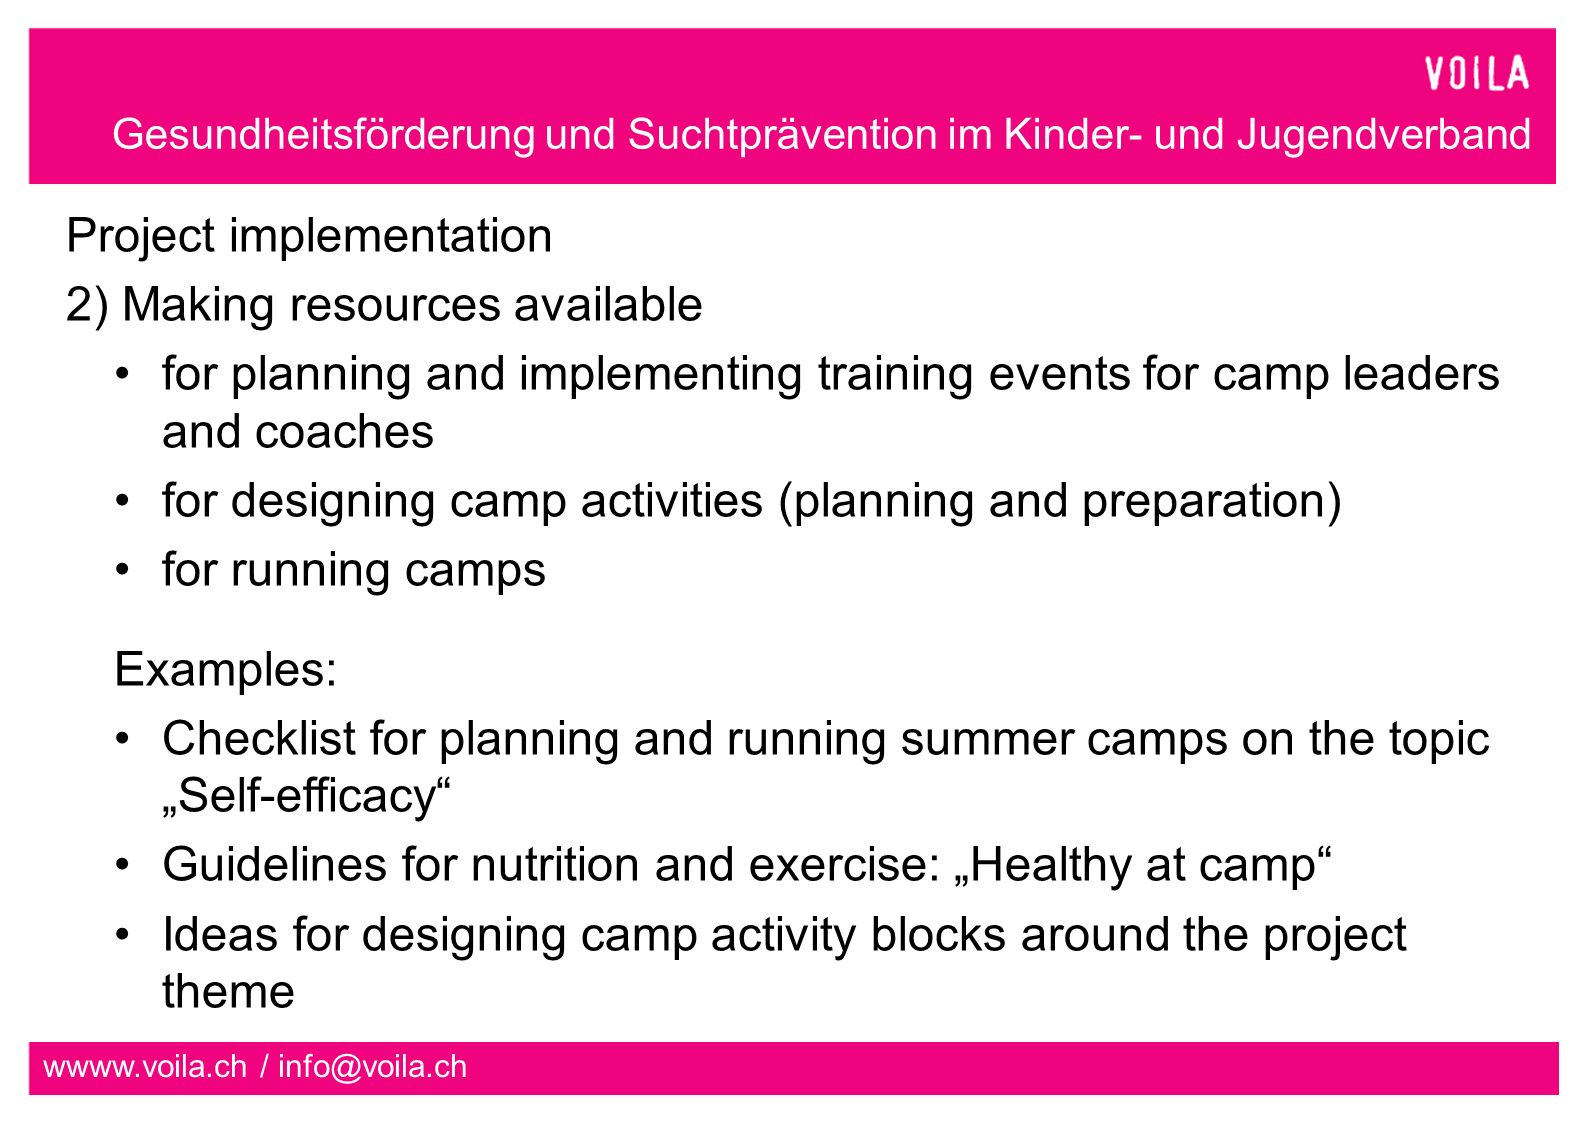 Gesundheitsförderung und Suchtprävention im Kinder- und Jugendverband wwww.voila.ch / info@voila.ch Project implementation 2) Making resources available for planning and implementing training events for camp leaders and coaches for designing camp activities (planning and preparation) for running camps Examples: Checklist for planning and running summer camps on the topic Self-efficacy Guidelines for nutrition and exercise: Healthy at camp Ideas for designing camp activity blocks around the project theme